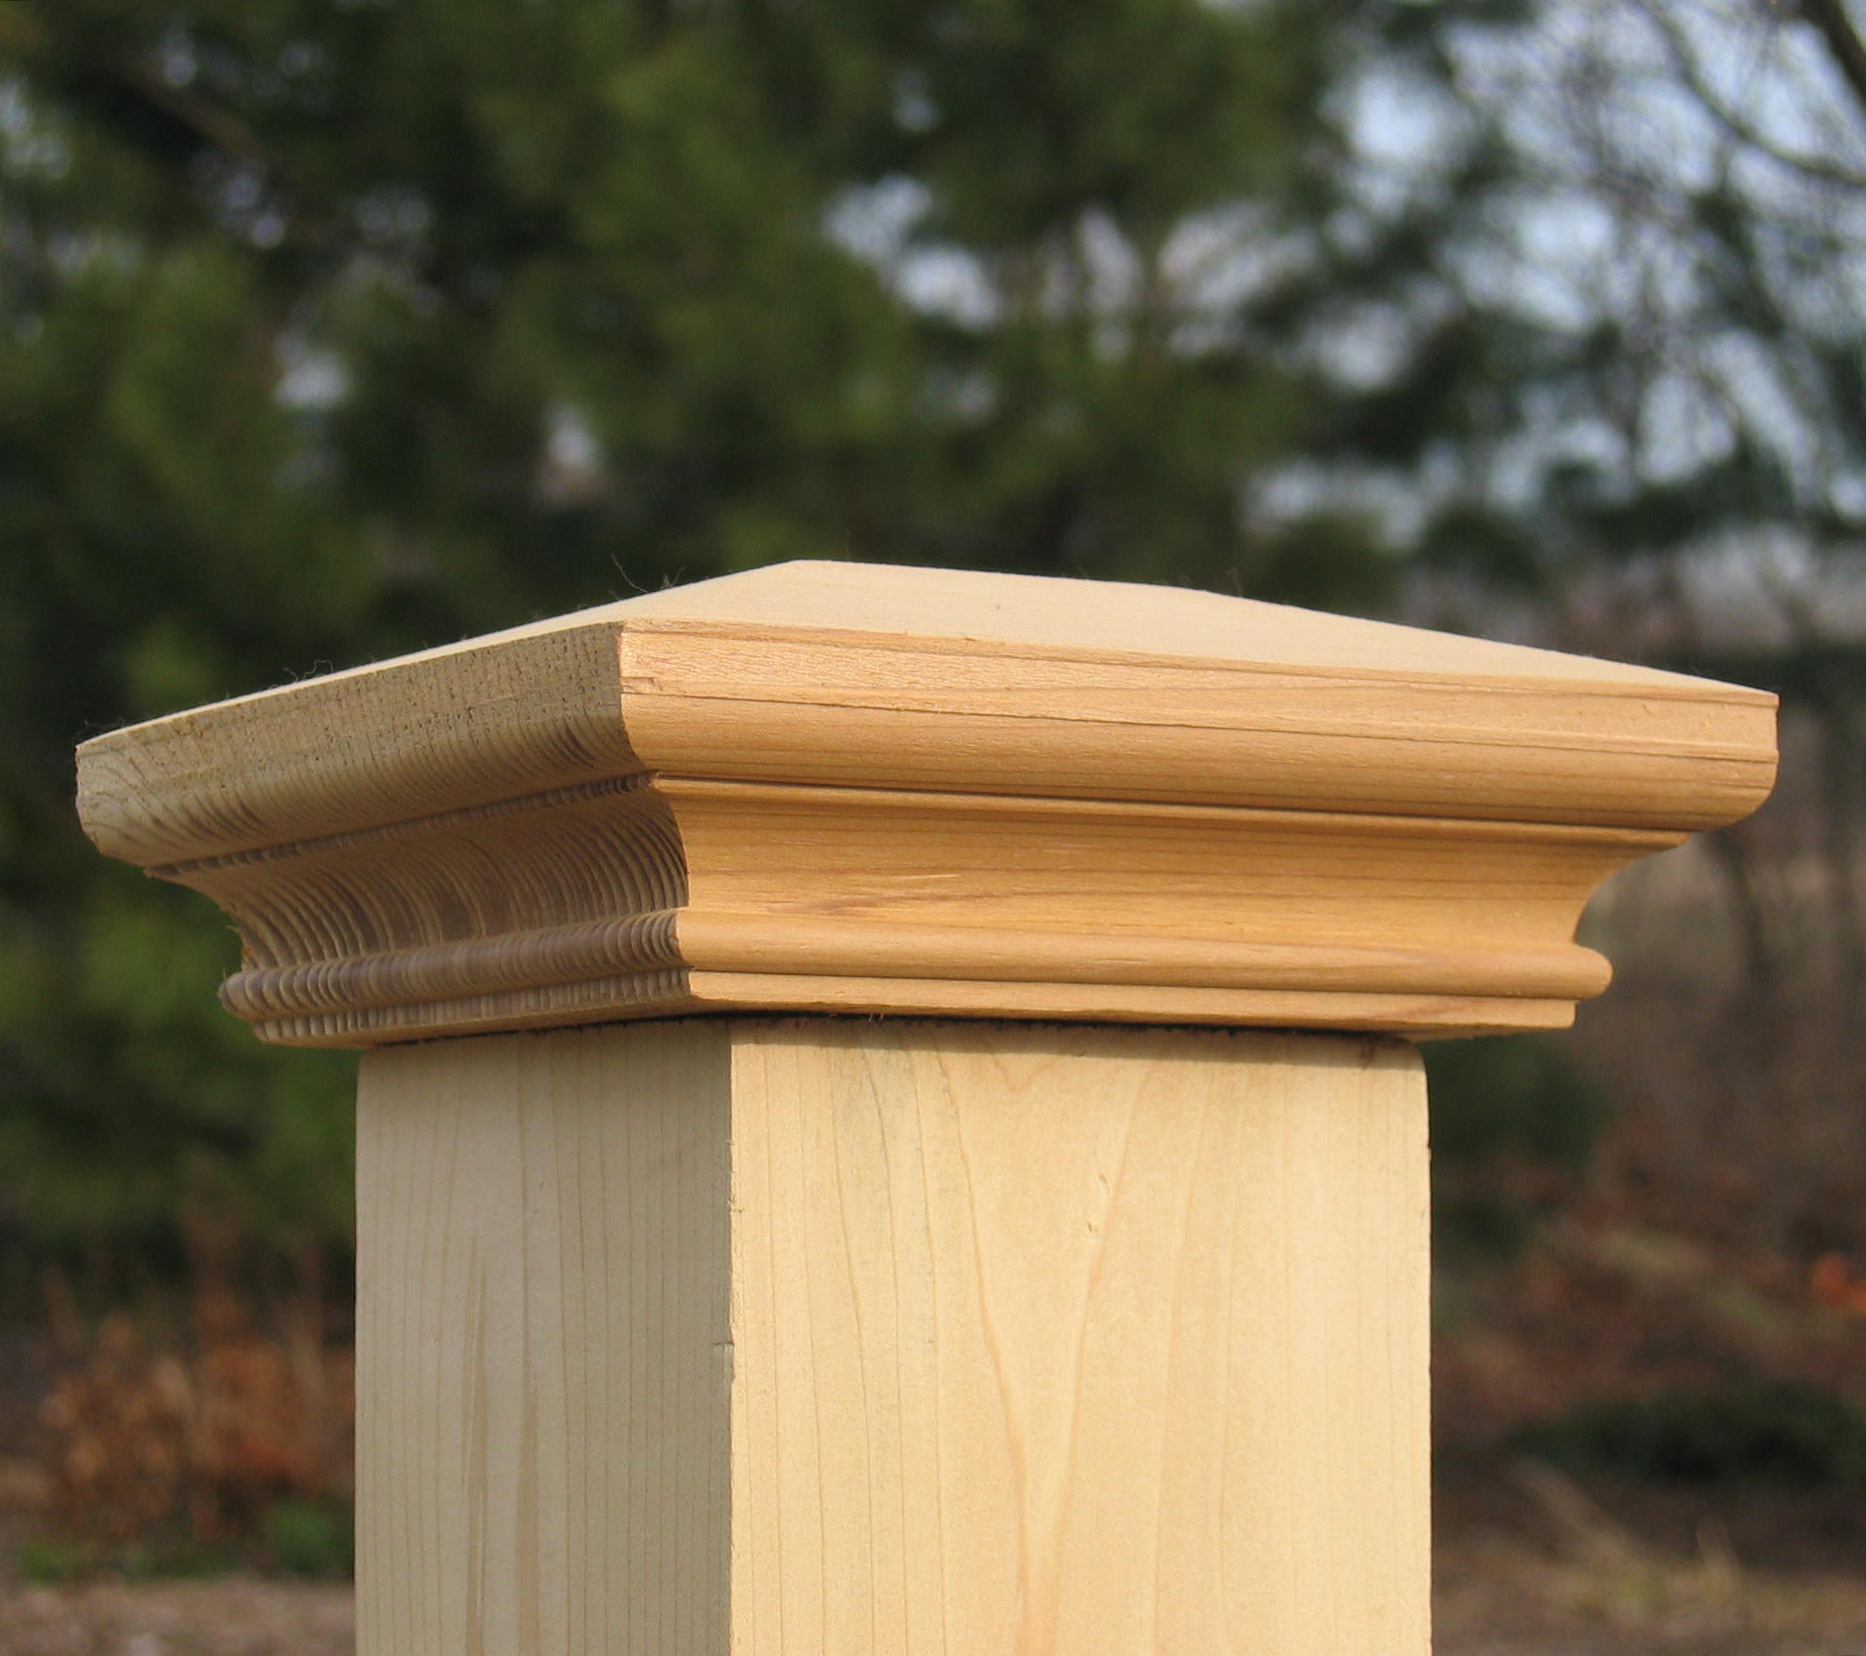 Wood Deck Post Toppers Decks Ideas in sizing 1866 X 1656